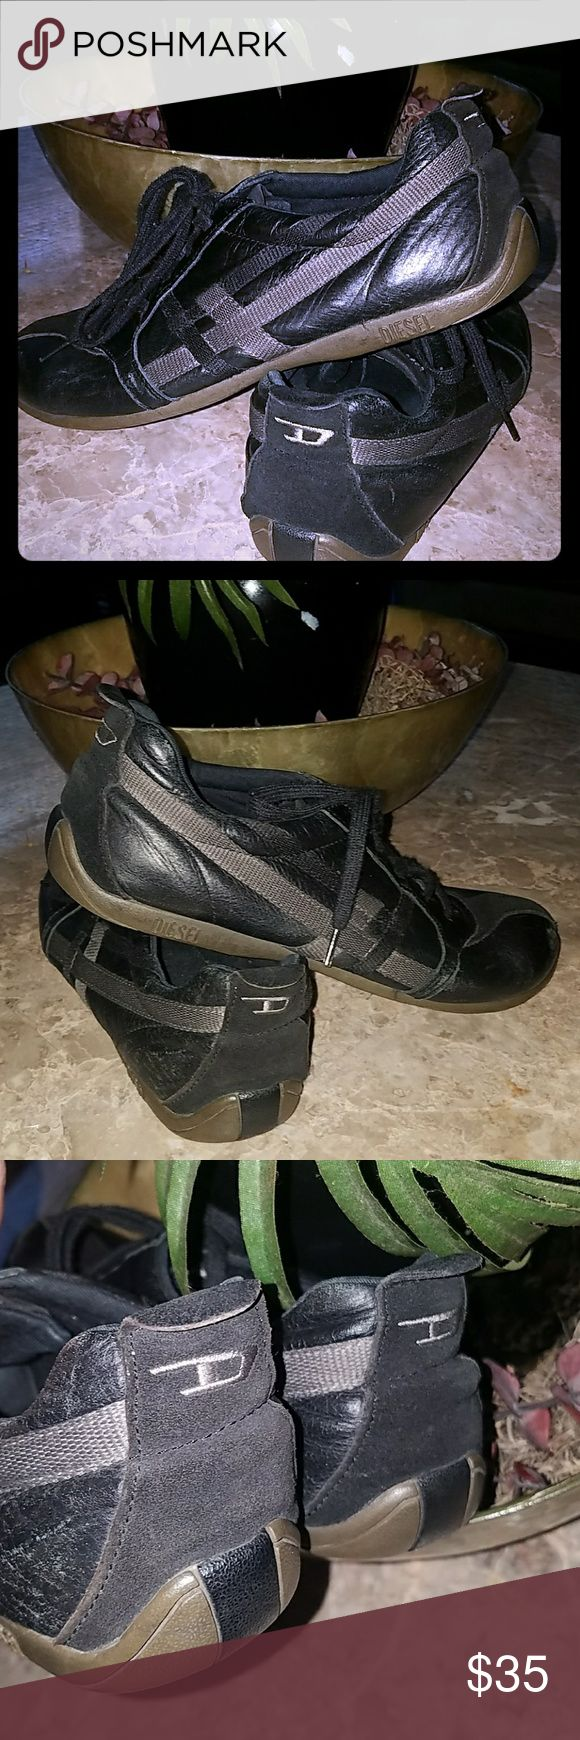 Womens Sz 10/Mens Sz 8 Diesel Dress Sneakers Used but LOTS of life left. No tears,  rips,  holes,  stains,  etc. Shoe strings aren't shriveled and they still look GREAT!! Diesel Shoes Sneakers